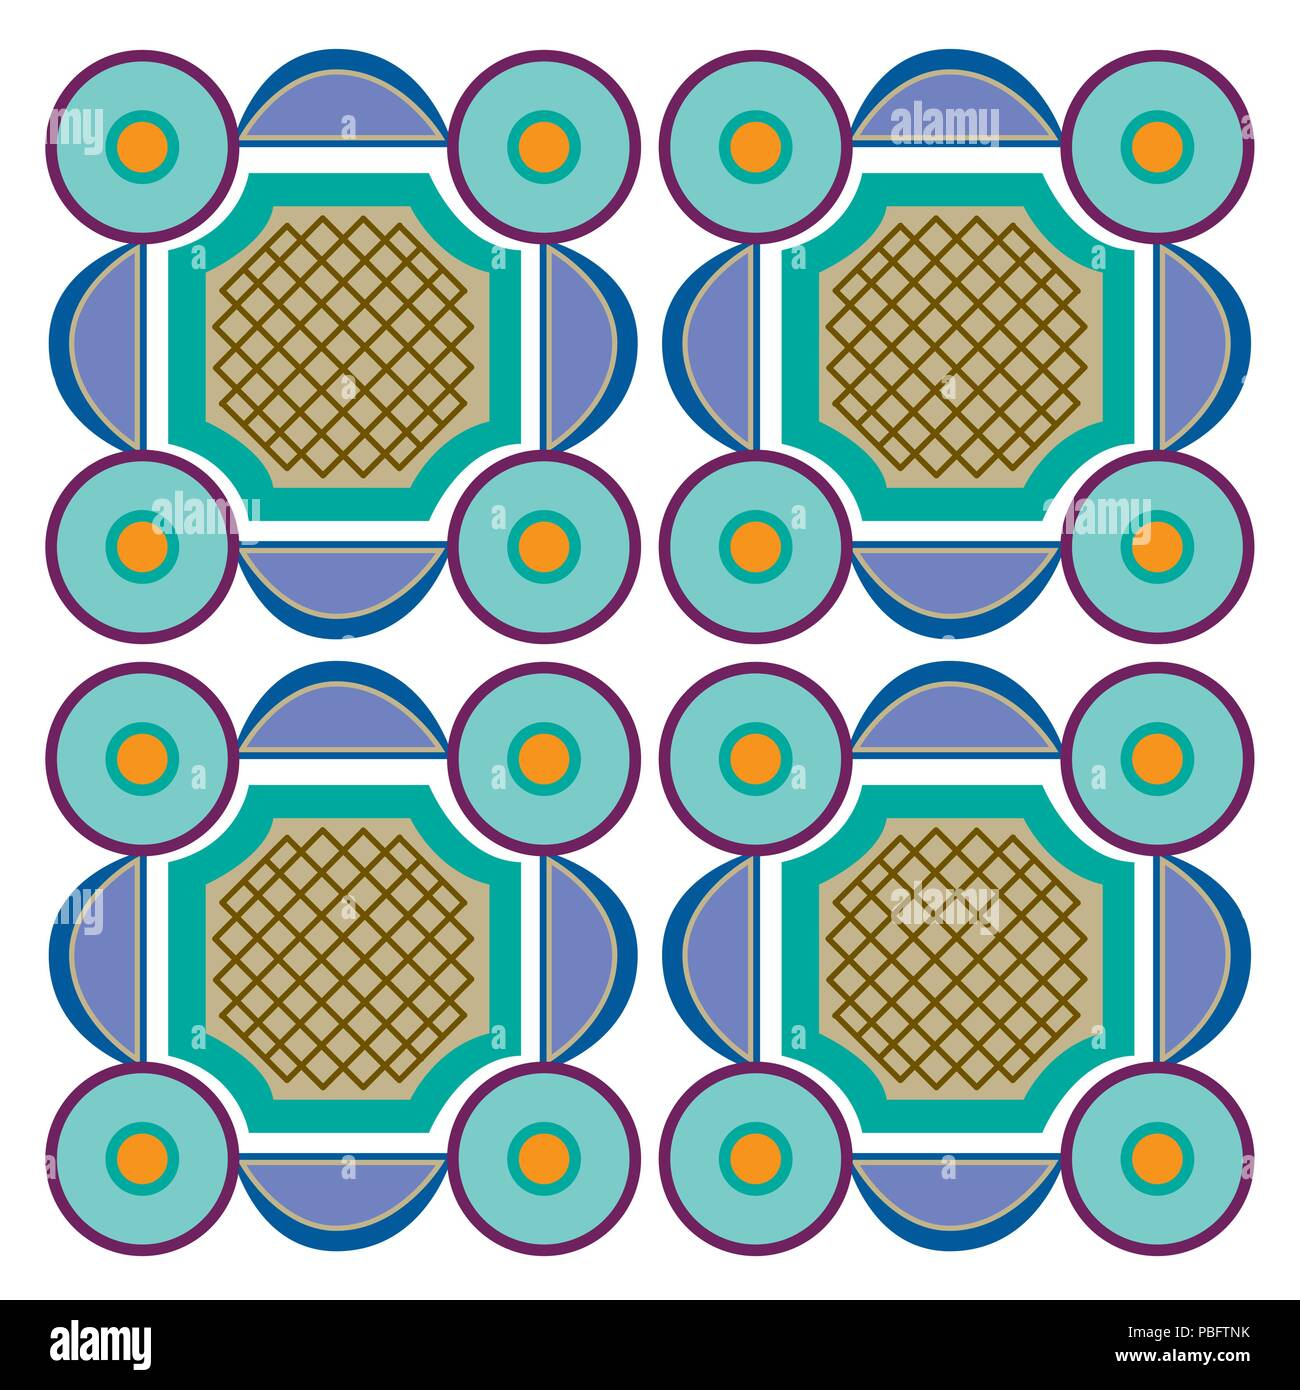 Geometric tile blocks, colorful decorative design elements Stock